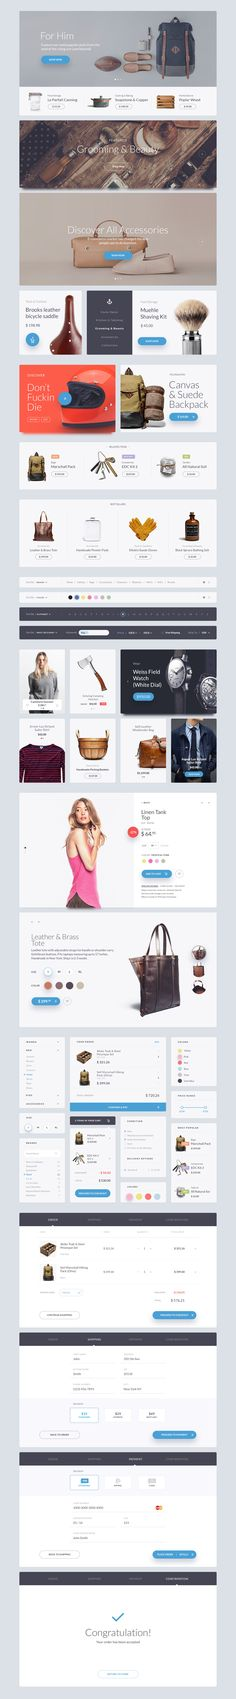 Kauf UI Web Kit on Behance